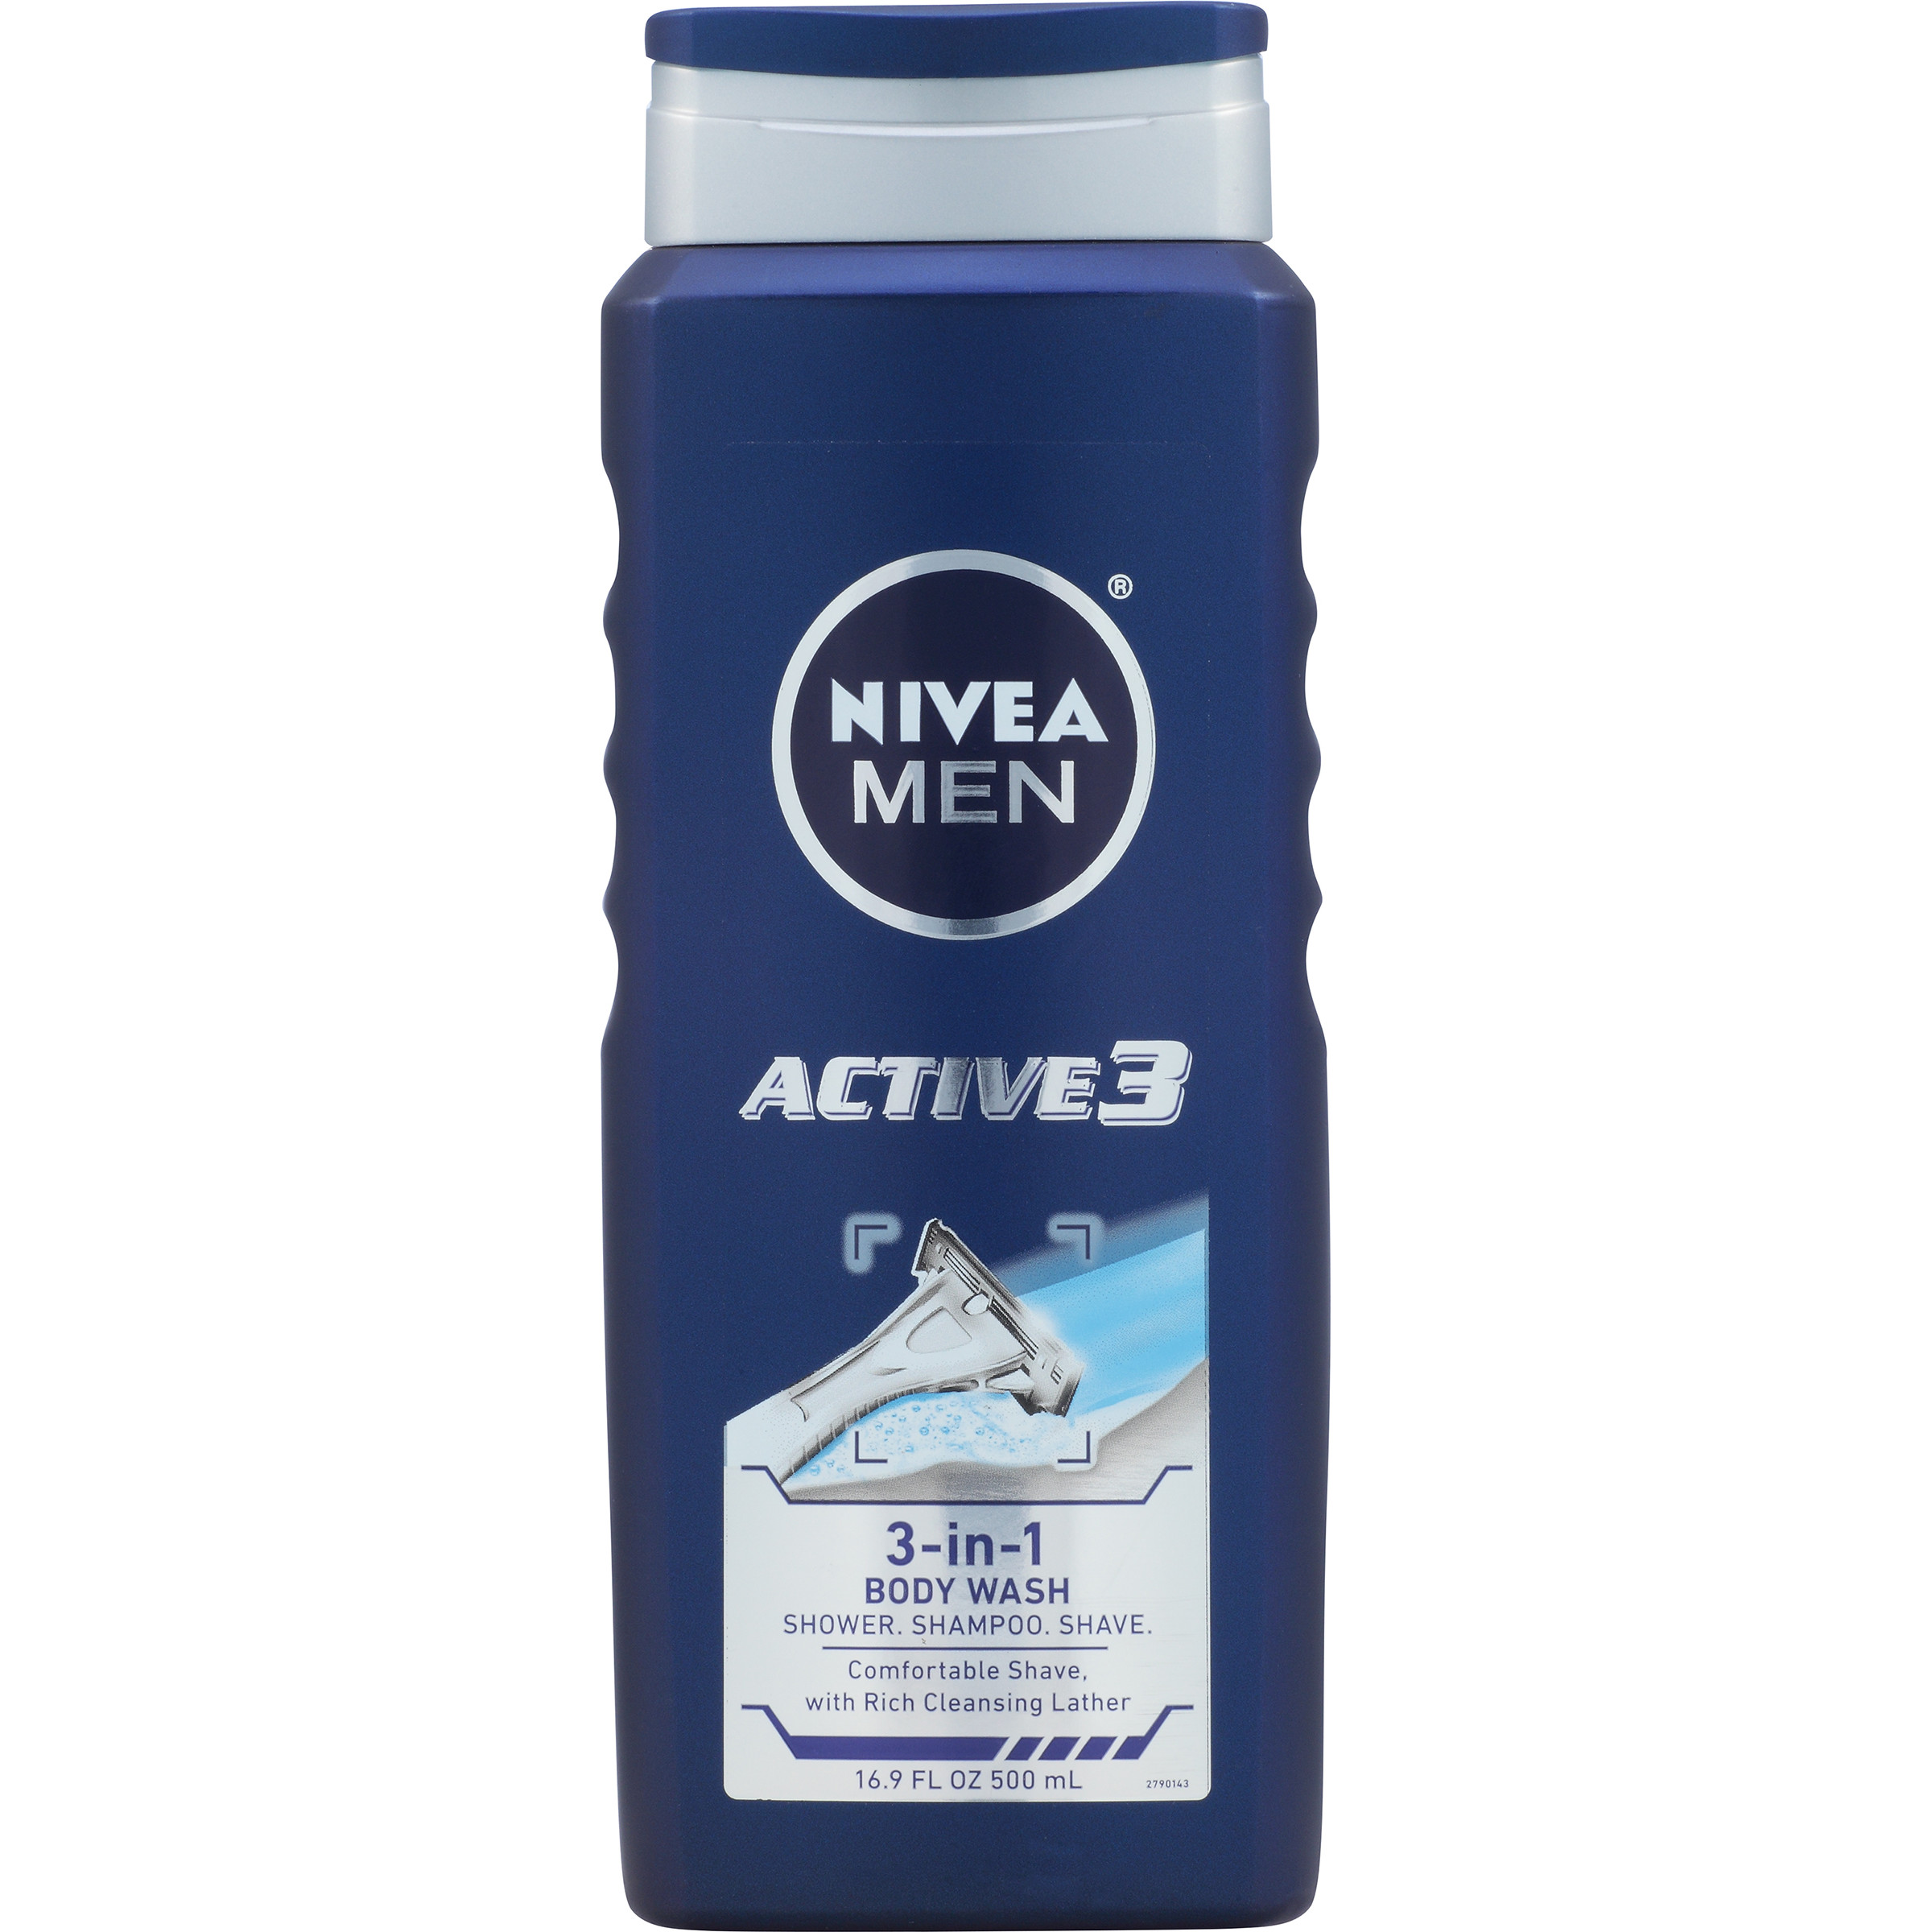 NIVEA Men® Active3 3-in-1 Body Wash 16.9 fl. oz.